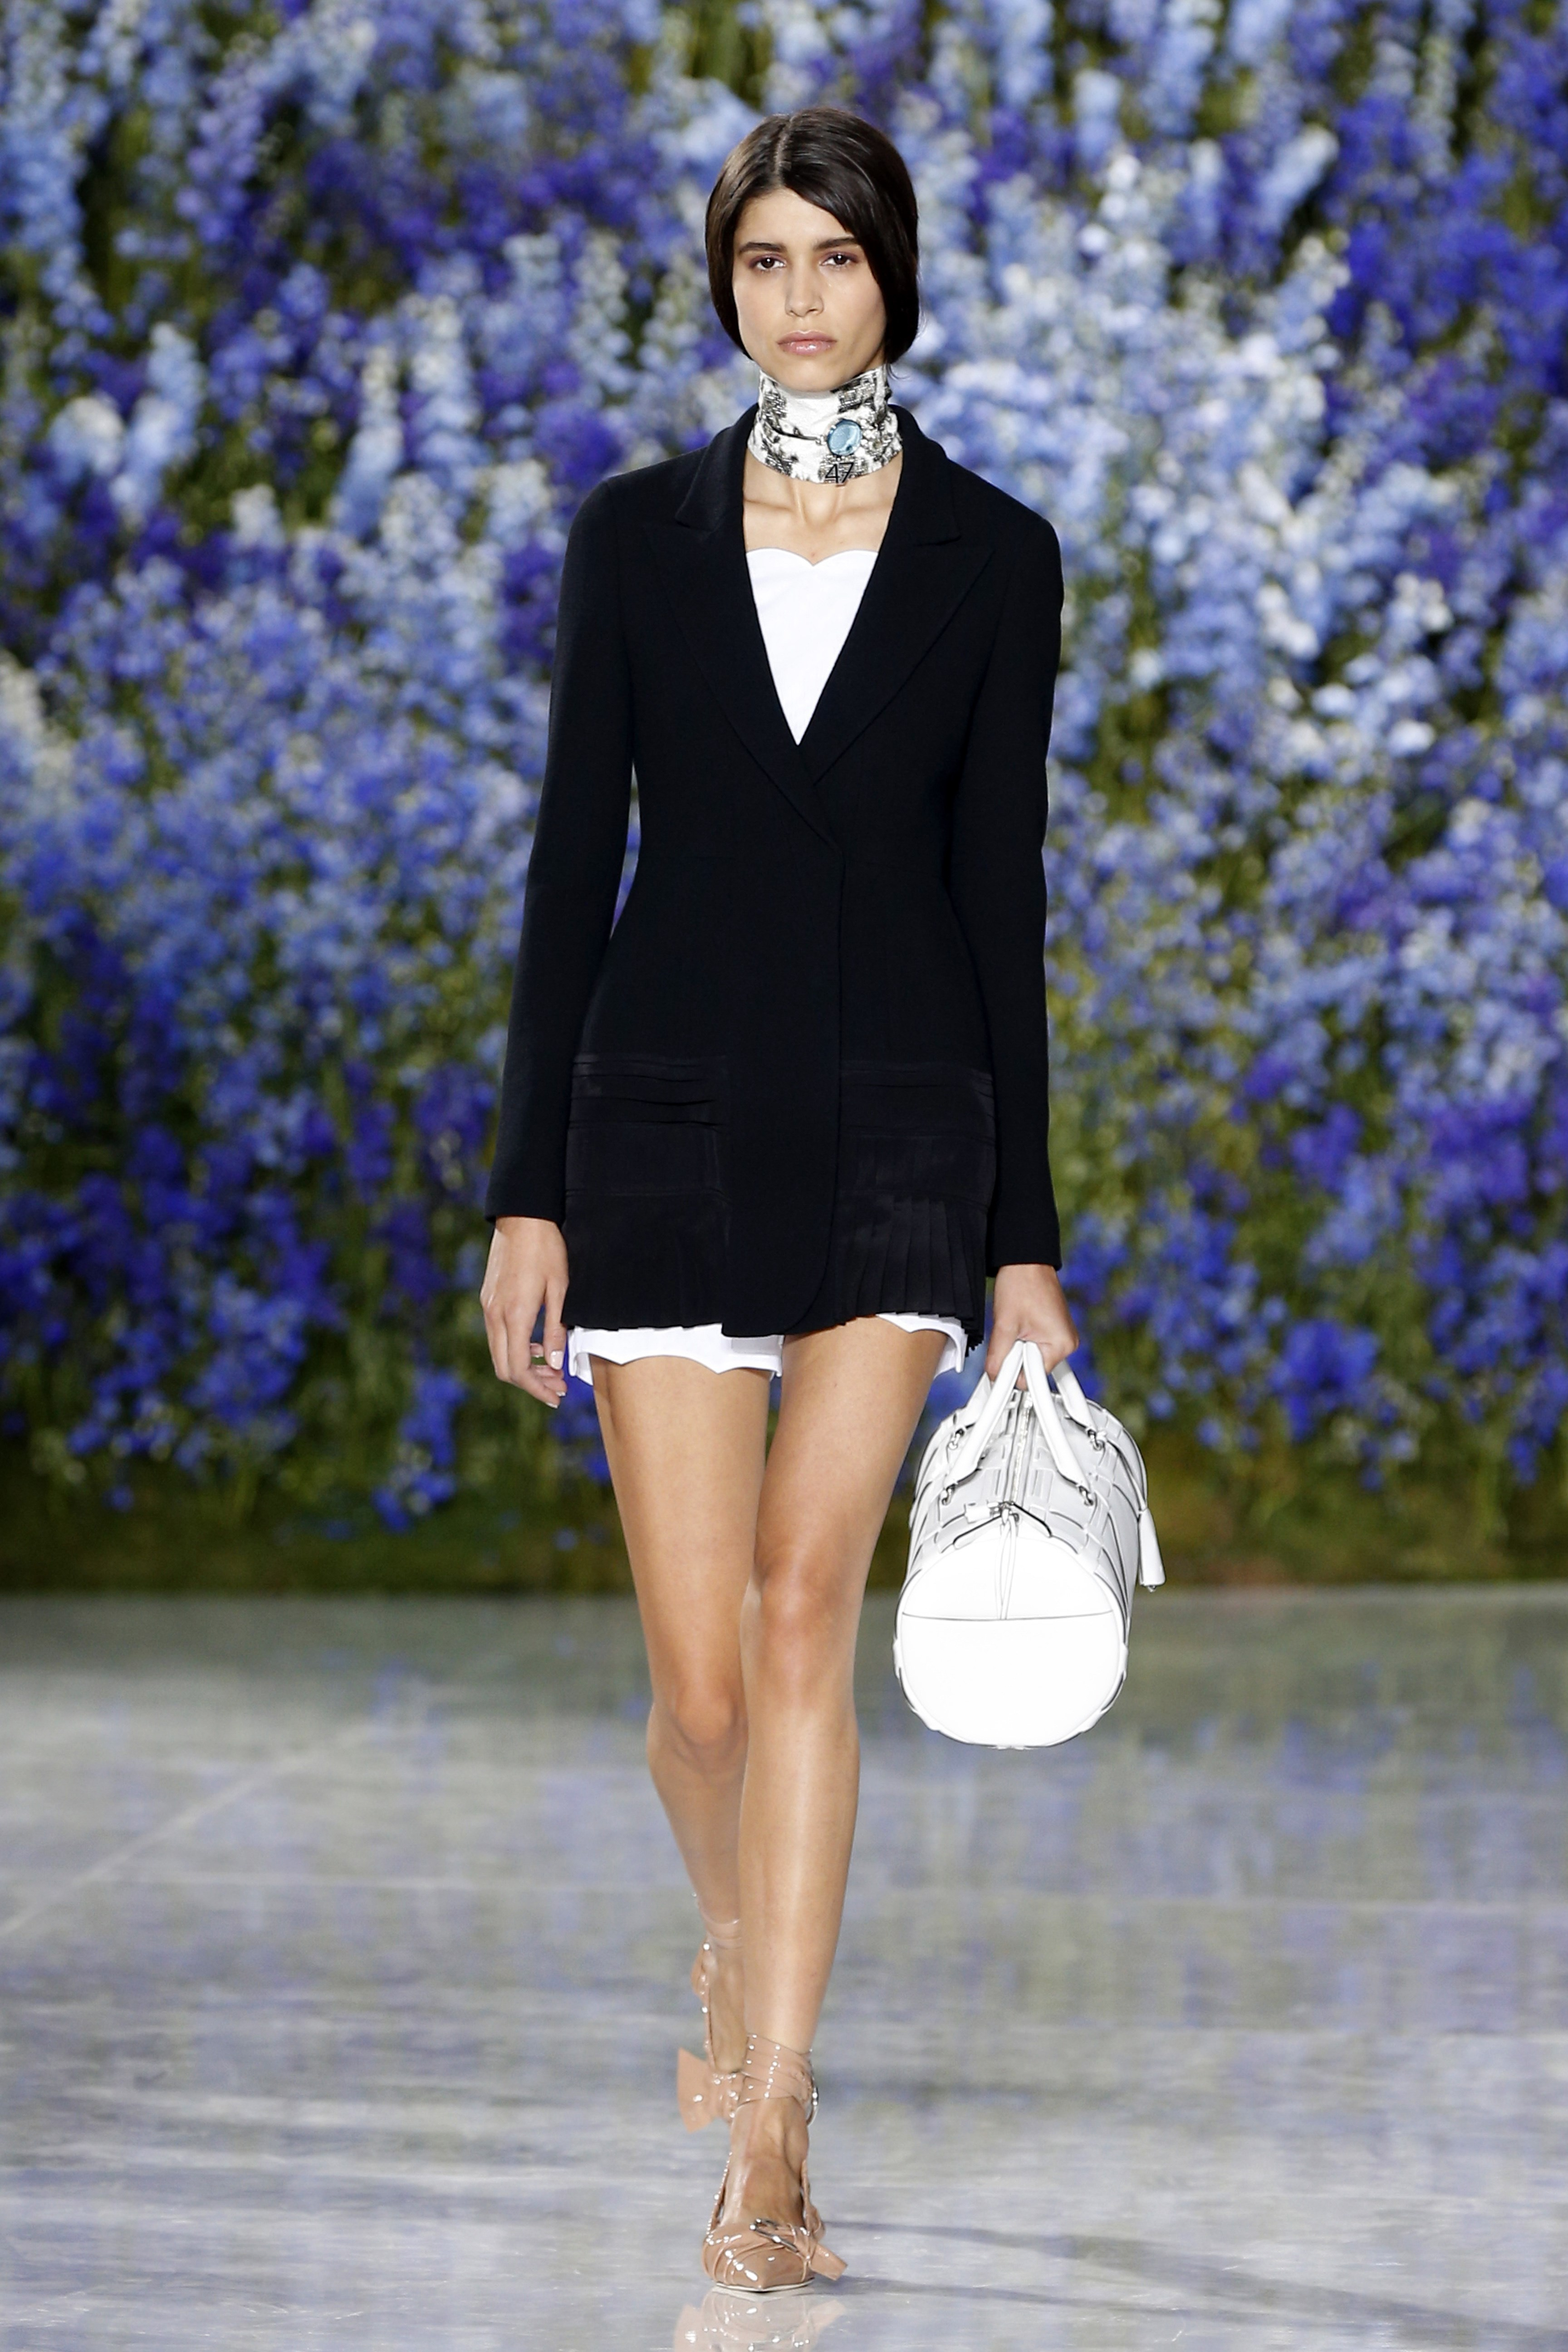 32a2e41e23d91 A model presents a creation for Christian Dior during the 2016  Spring/Summer ready-